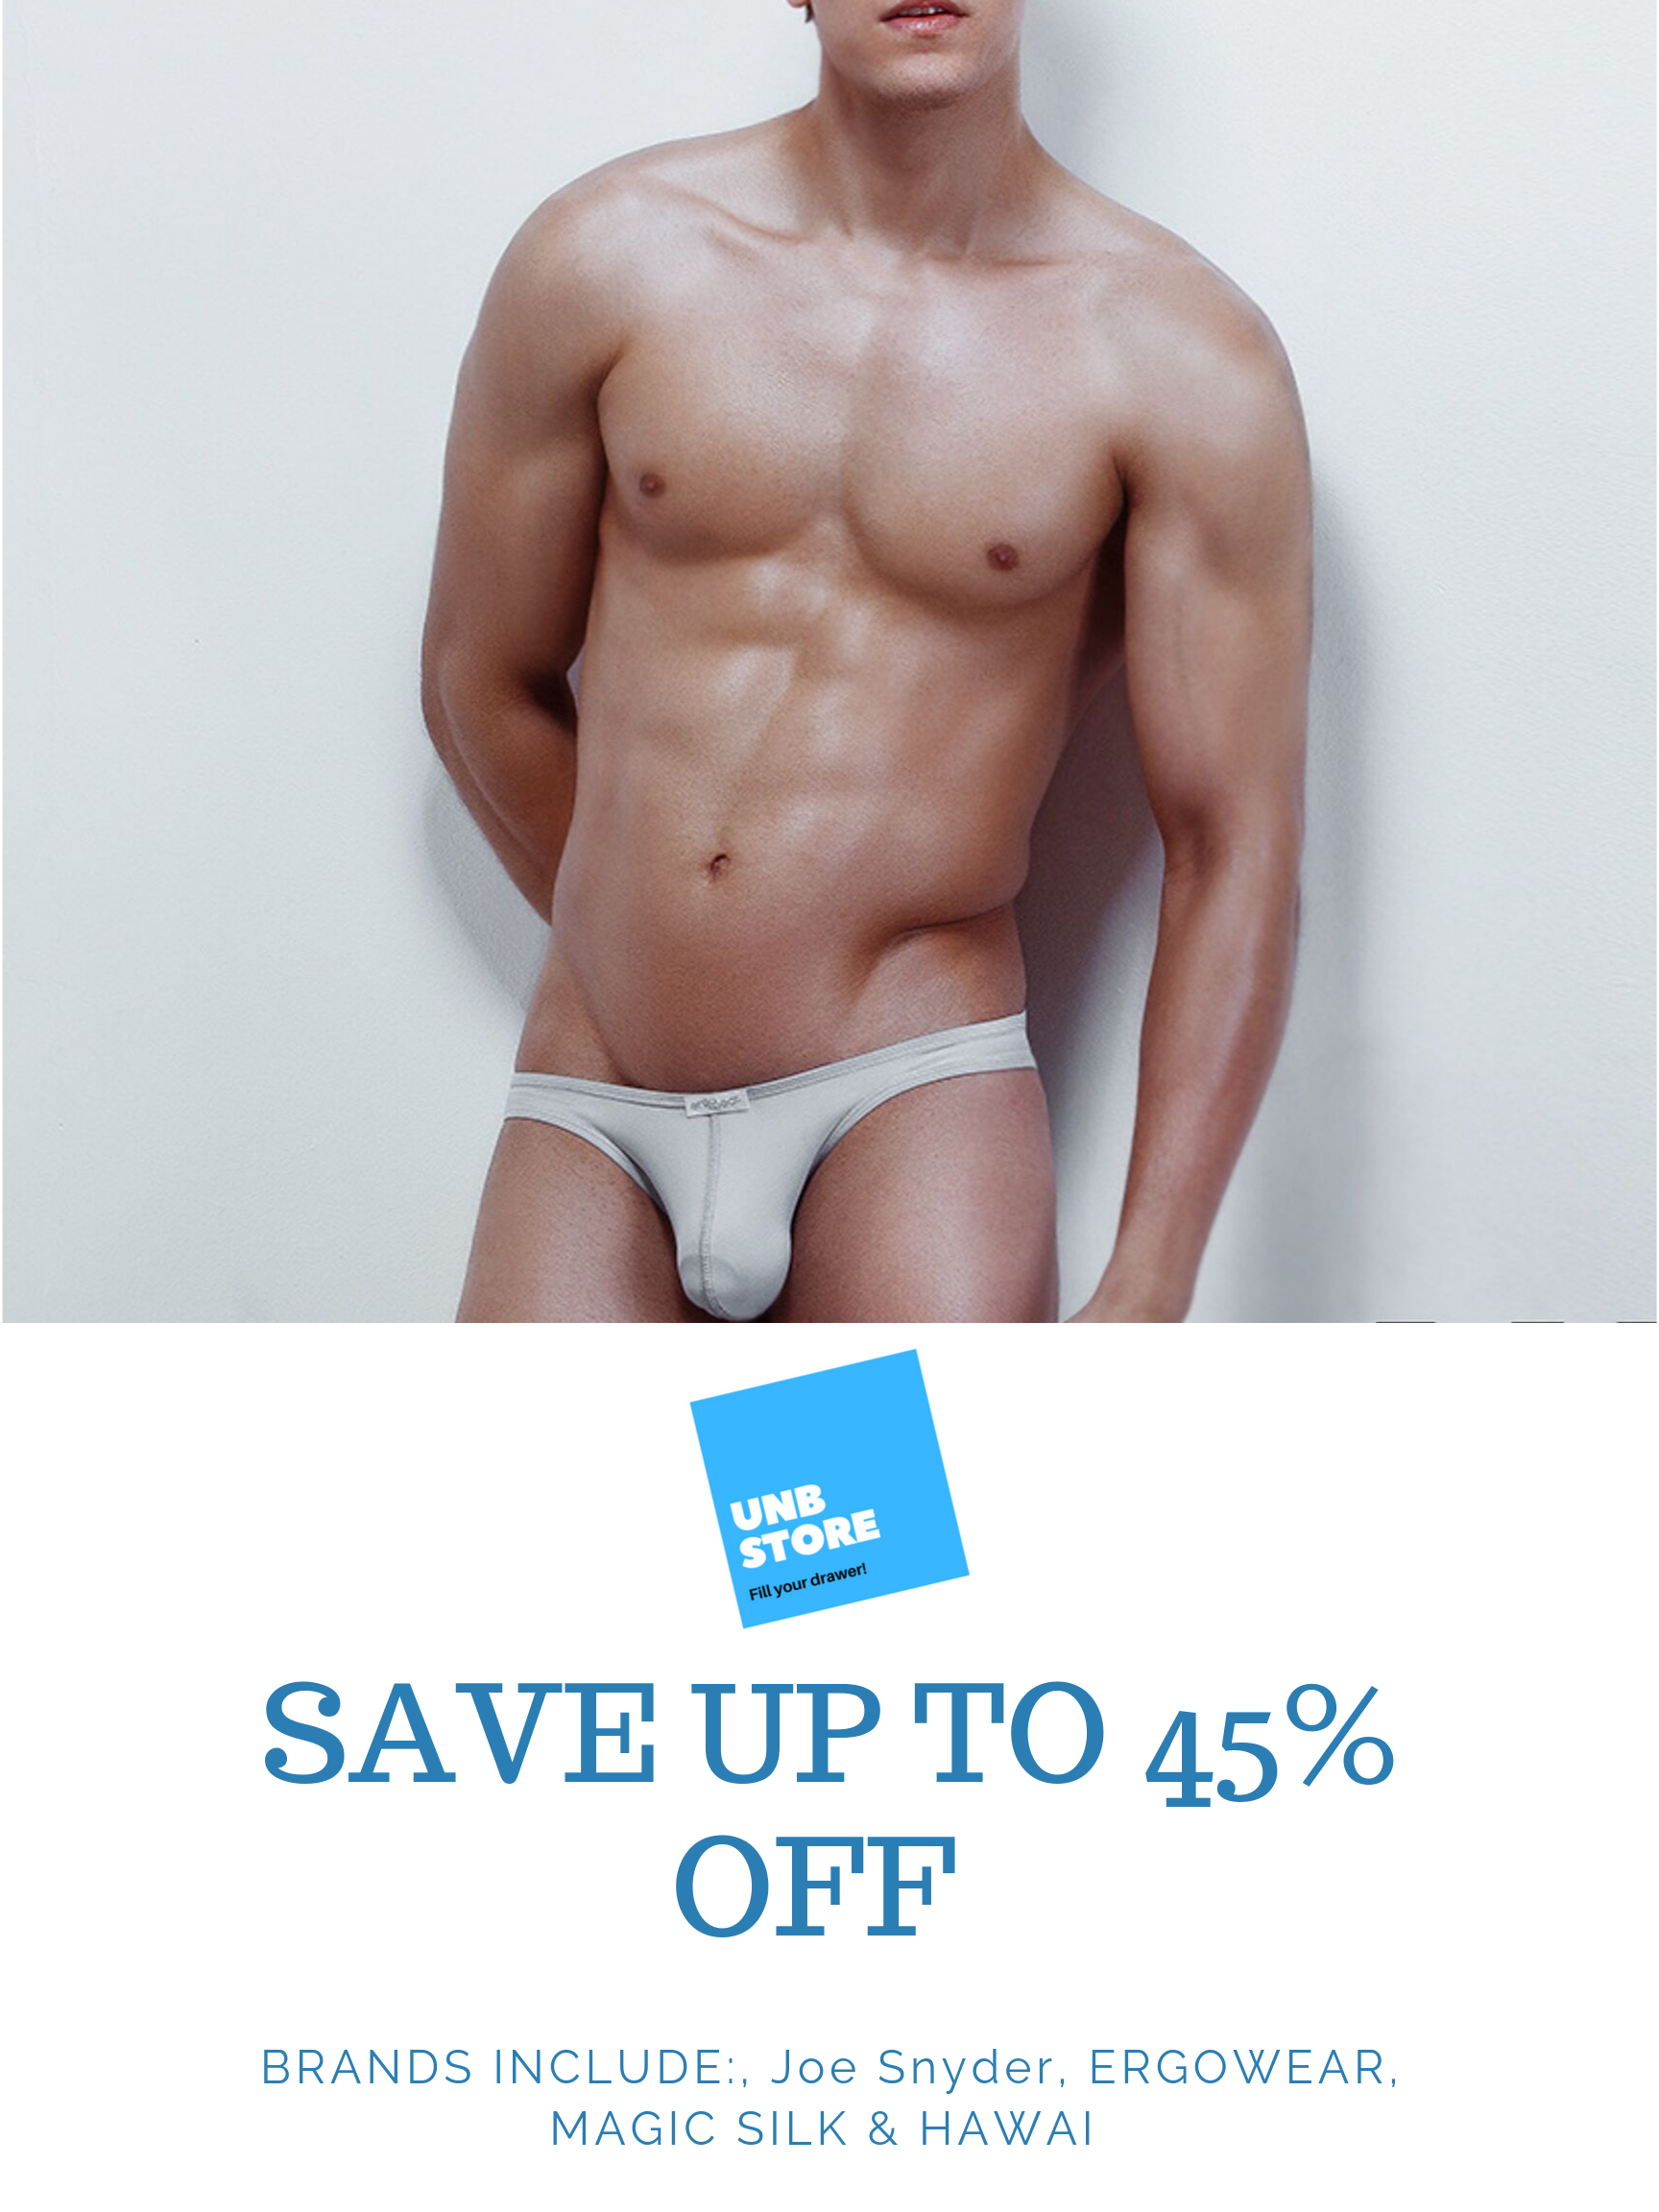 Save up to 45% off Your Favorite Brands